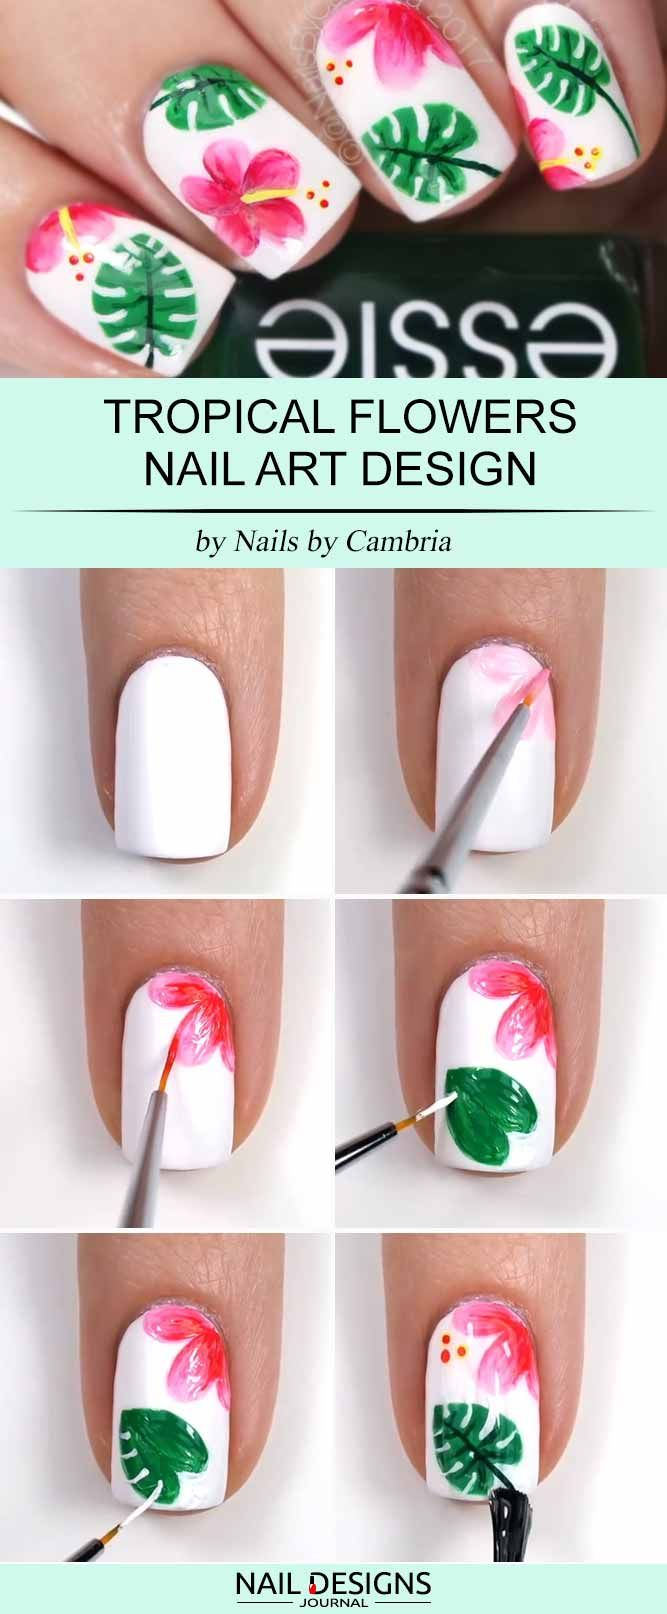 17 Super Easy Nail Designs Diy Tutorials Letras